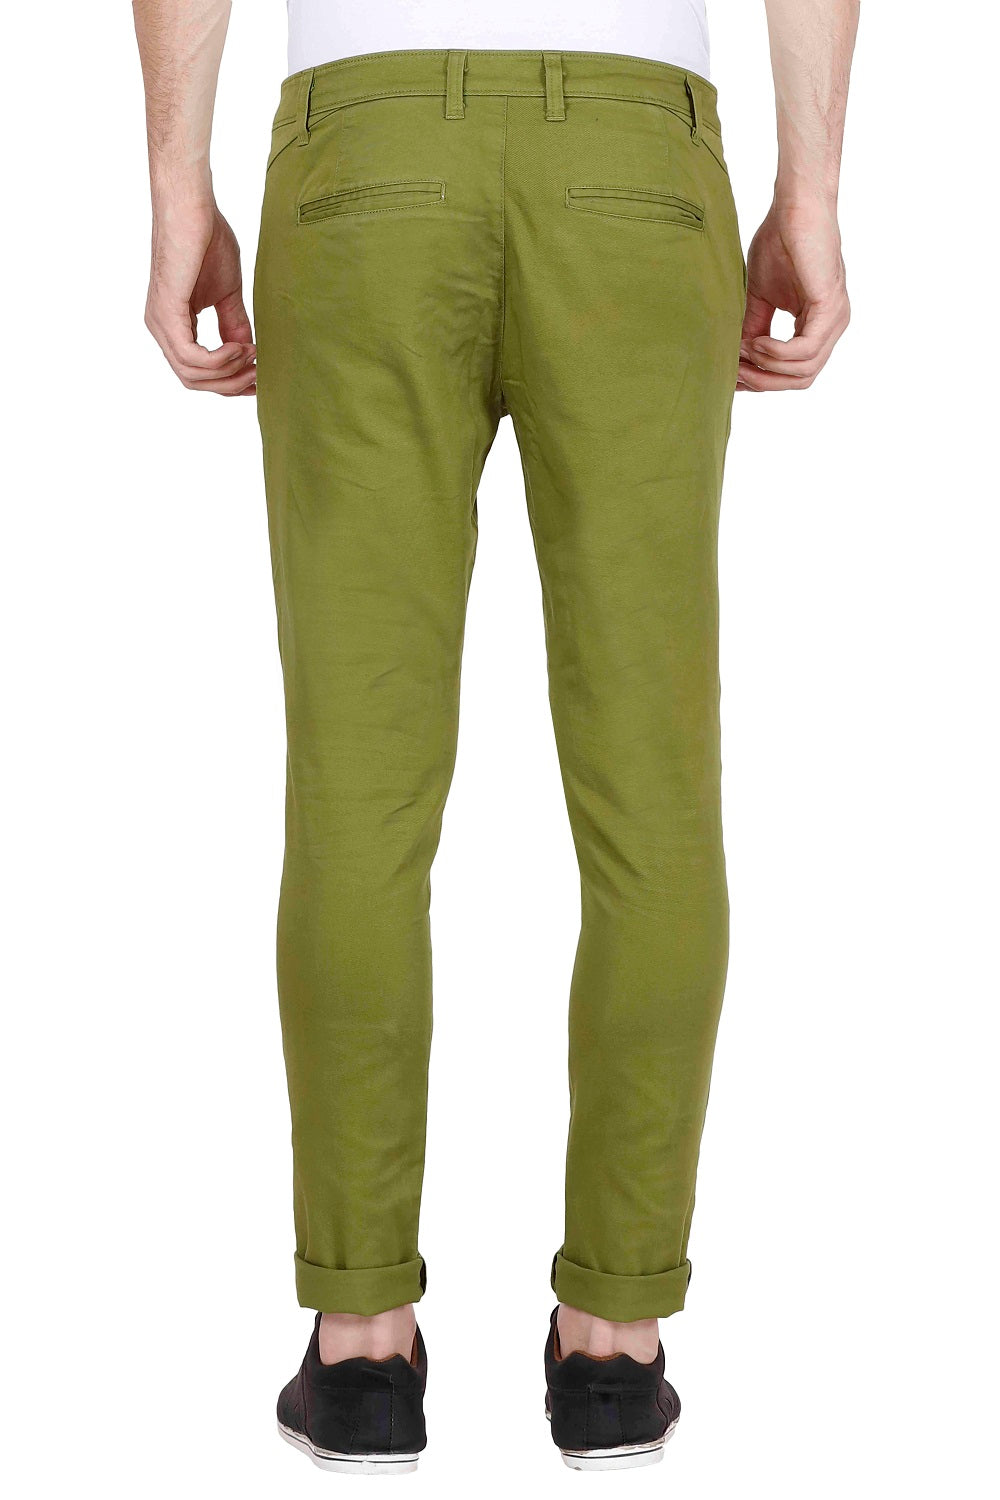 Men's Slim Fit Green Chinos